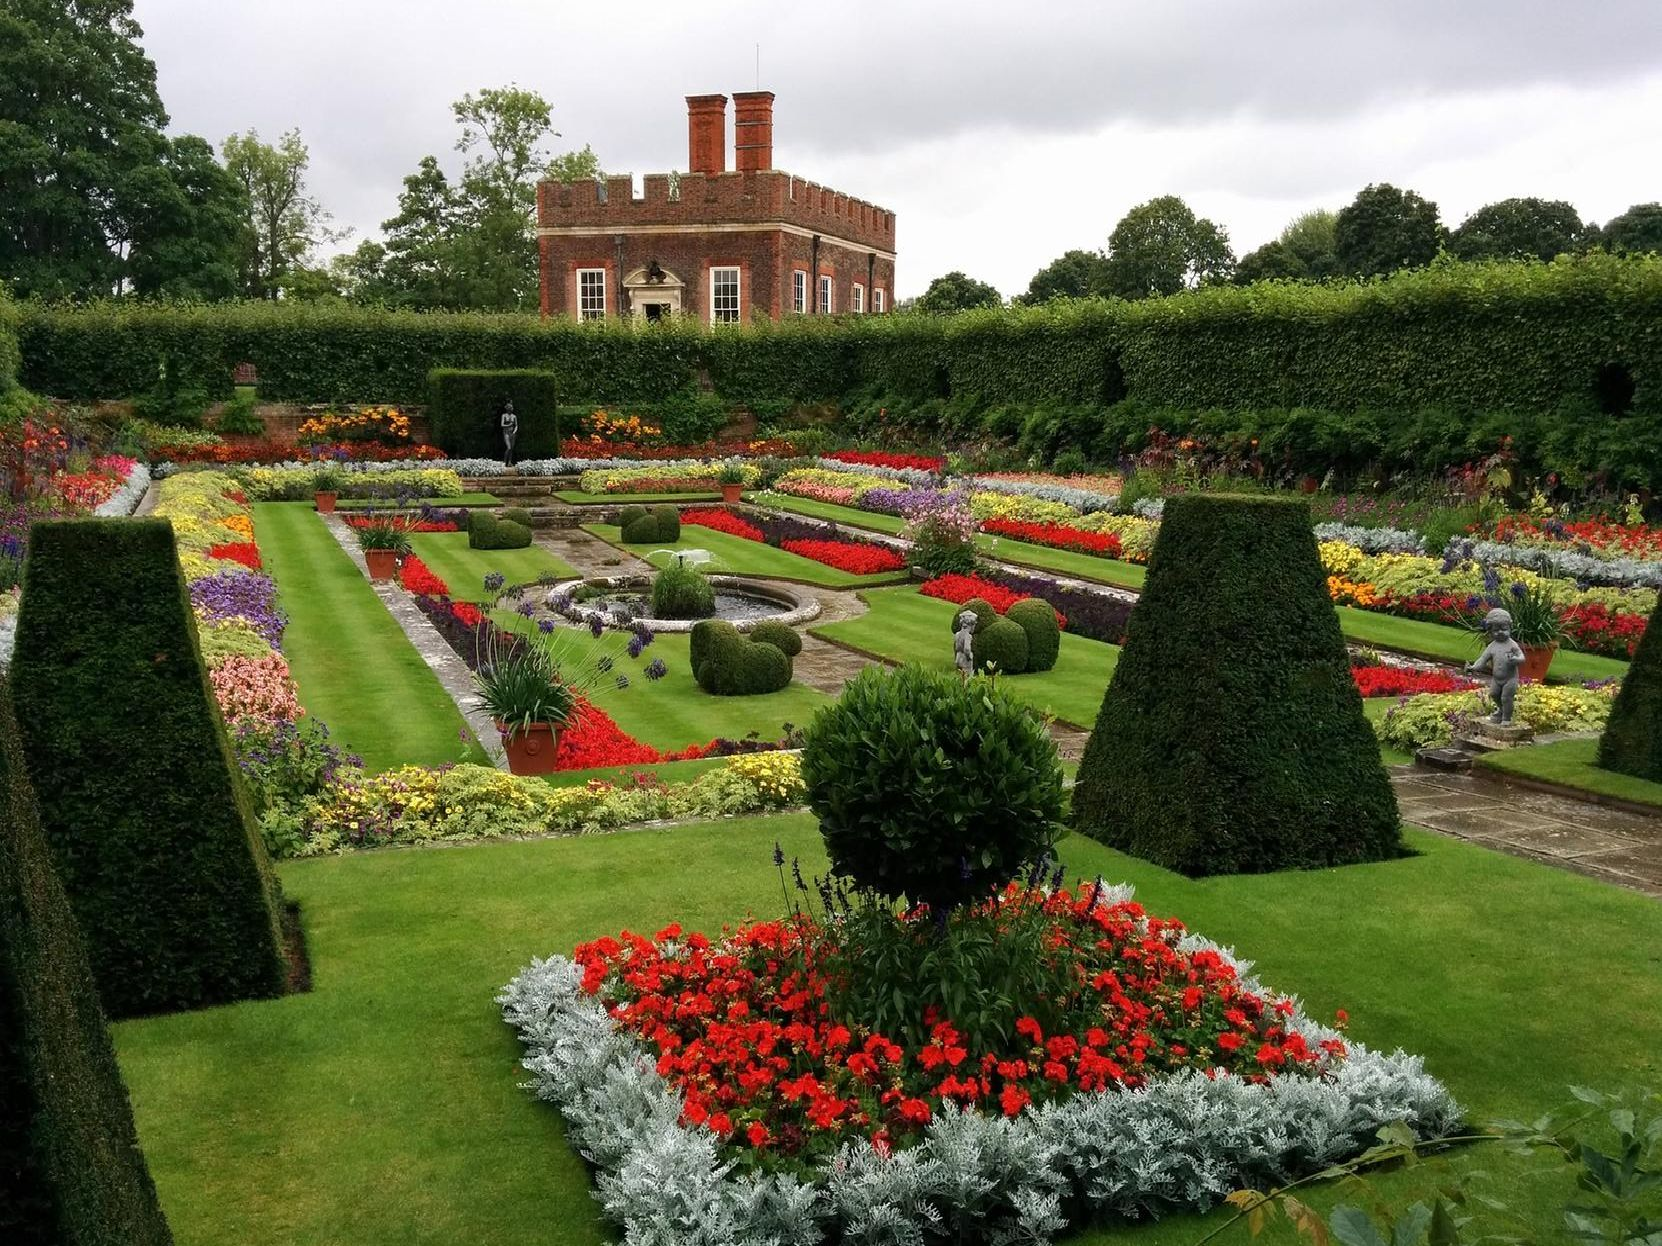 Having the right things in your garden can really increase the value of your home